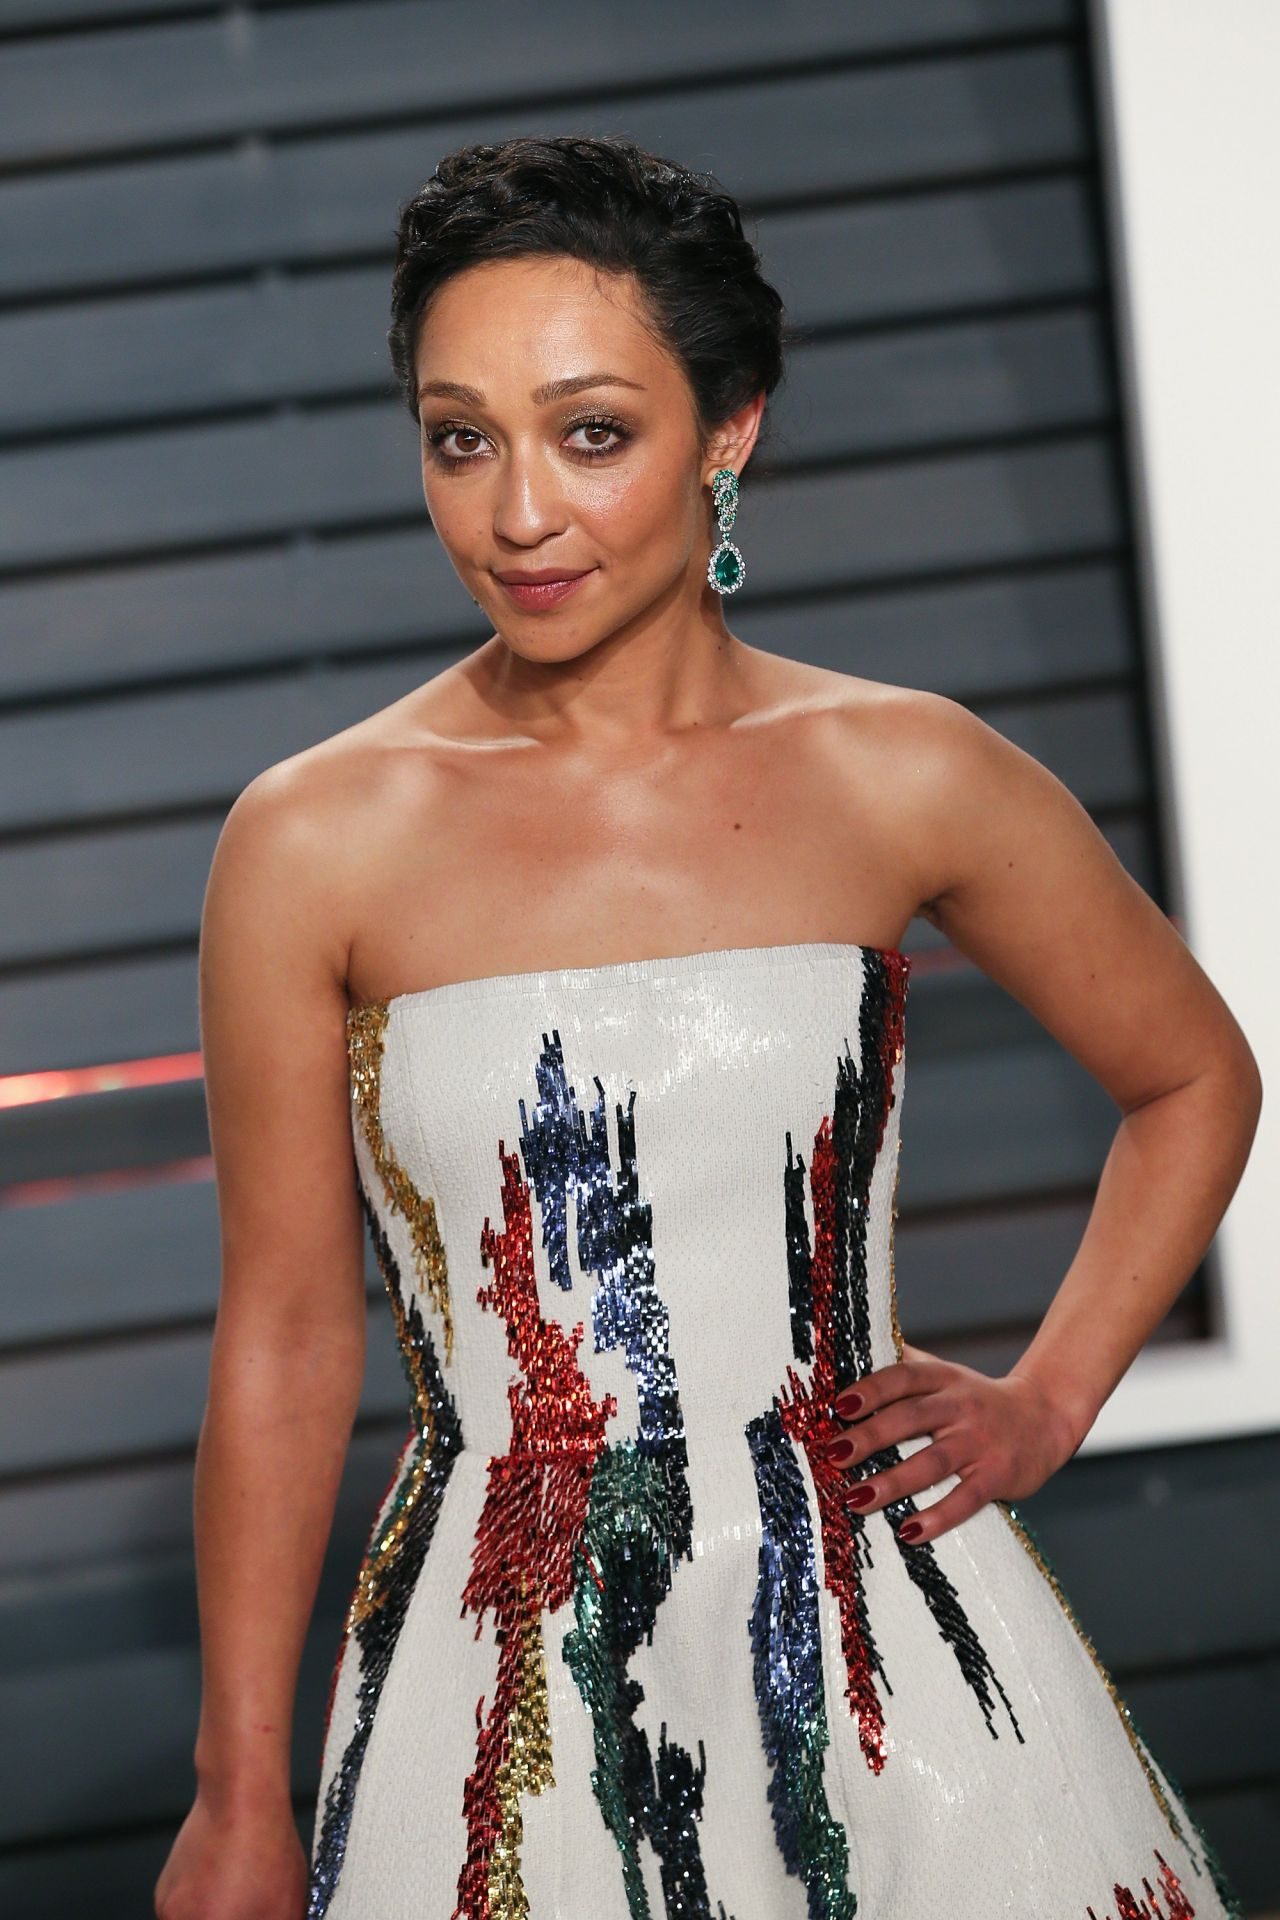 ruth-negga-at-vanity-fair-oscar-2017-party-in-los-angeles-1